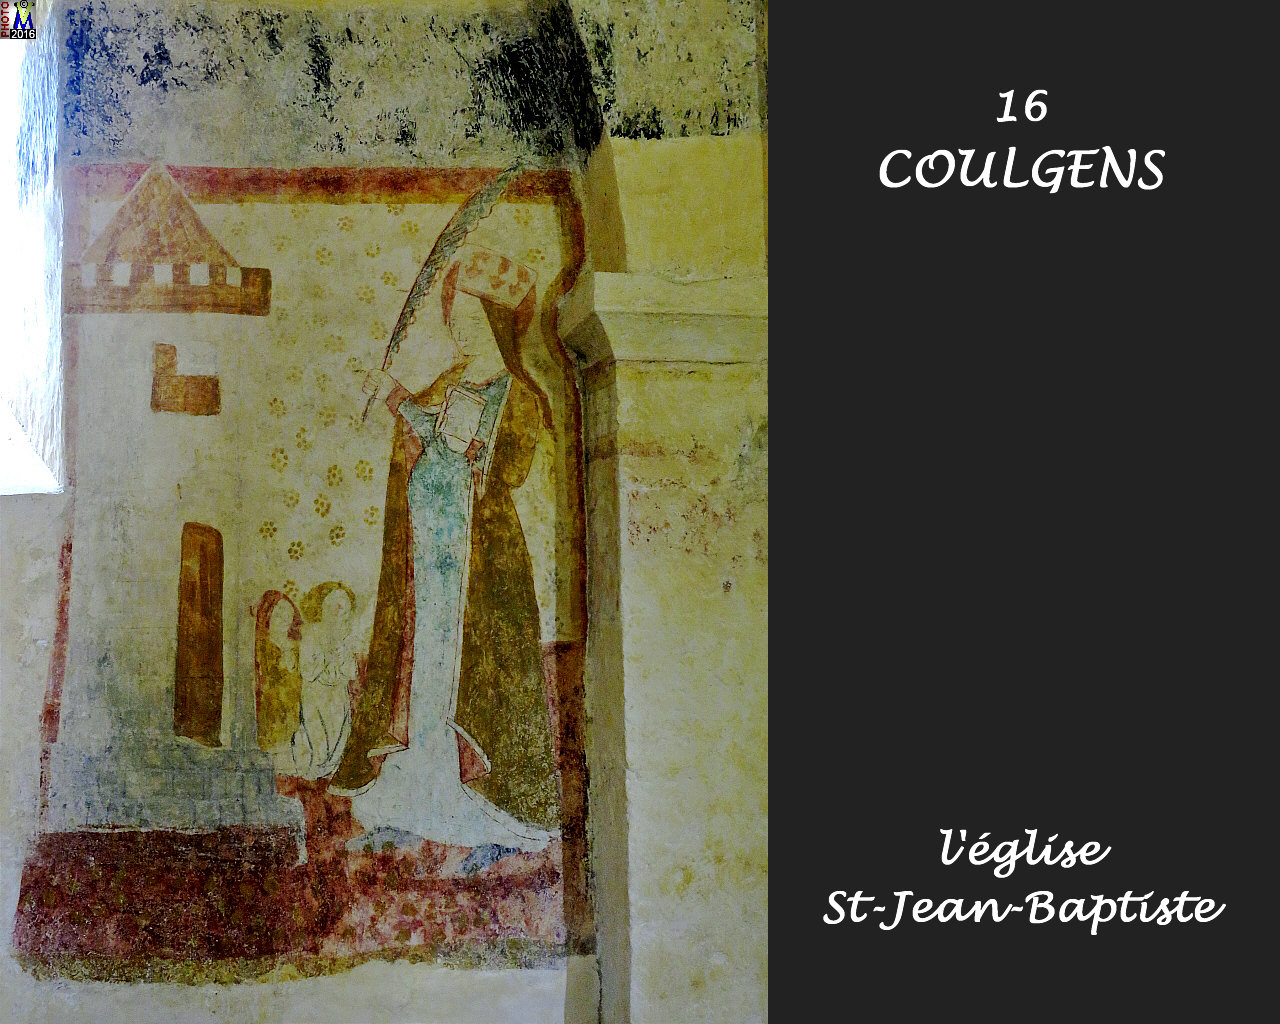 16COULGENS_eglise_1122.jpg